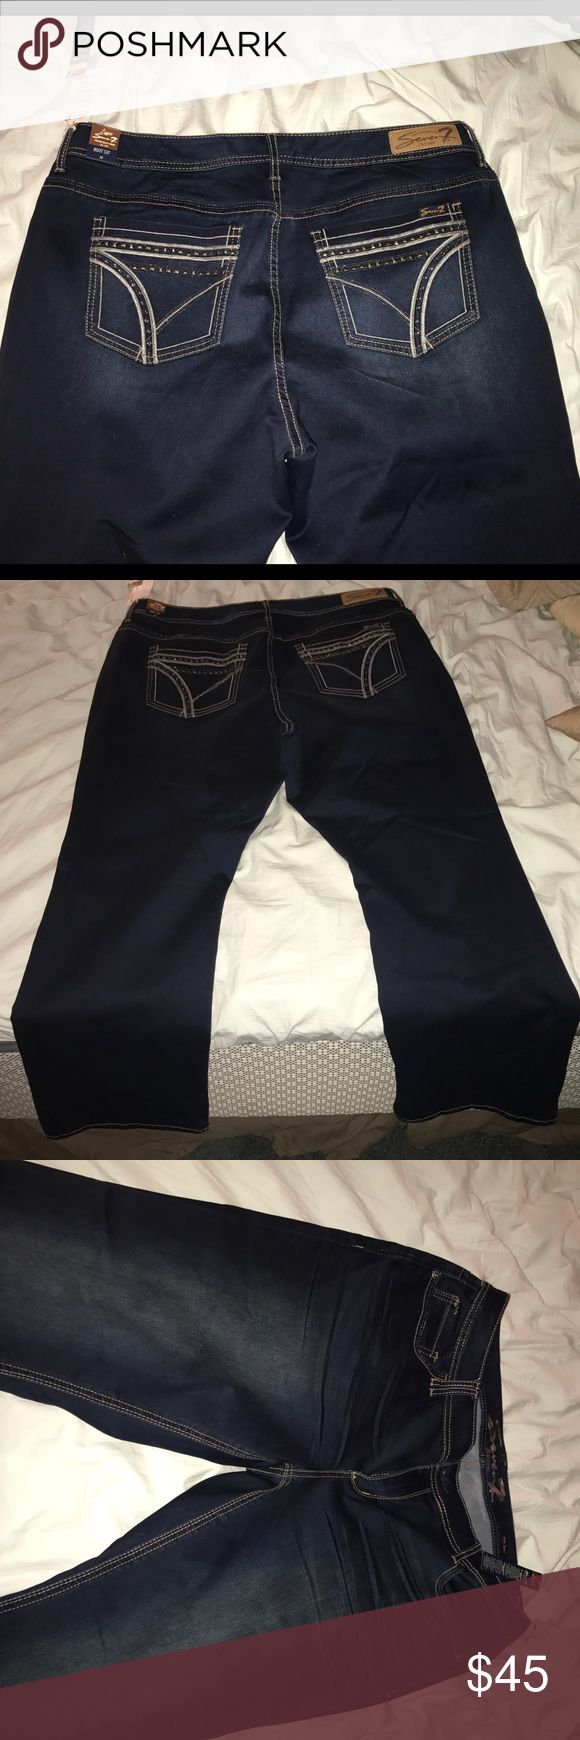 Seven plus size jean size 20 Boot cut Seven plus size jeans. Dark wash, feels like they have some stretch to them. NWT. Size 20. Regular length. Seven7 Jeans Boot Cut